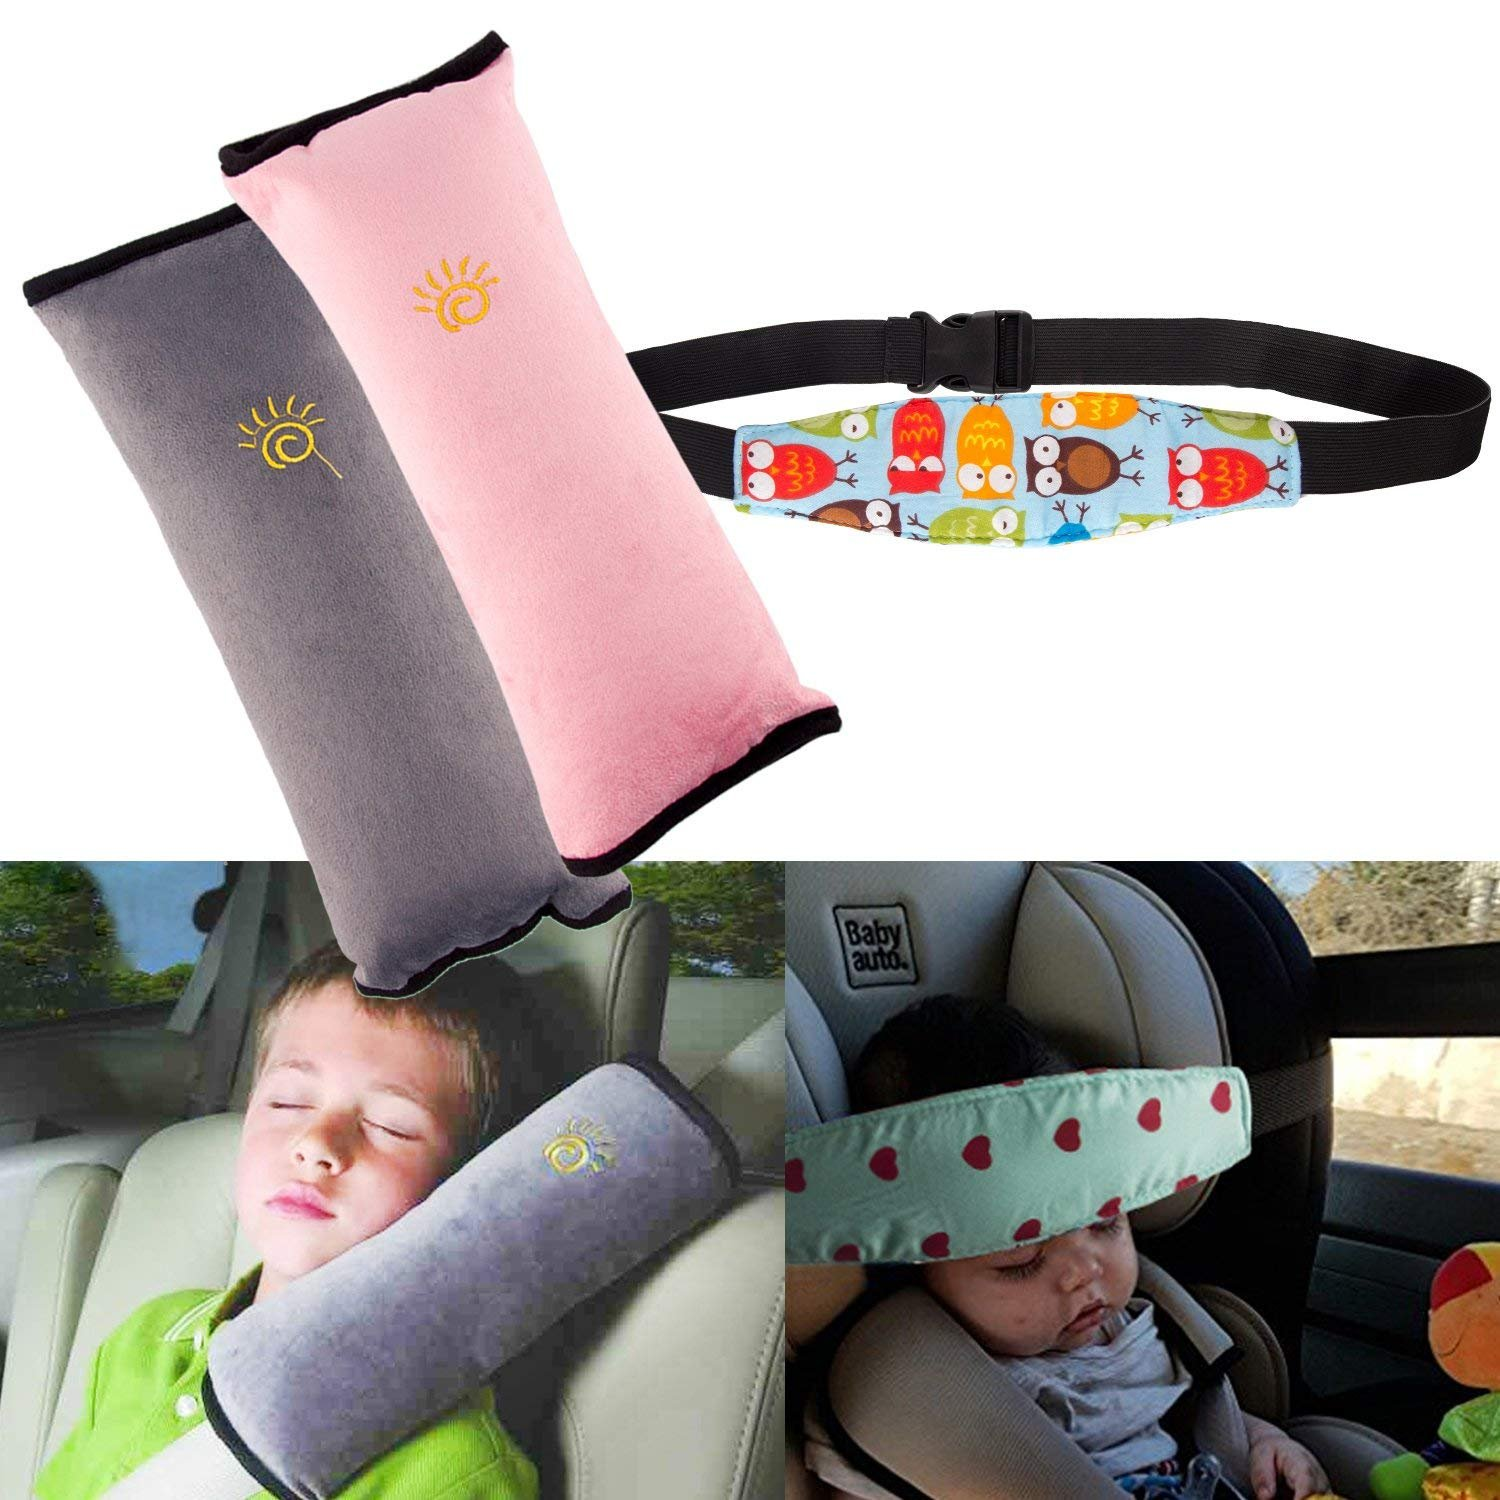 WATINC 3p Seatbelt Pillow, Car Seat Cover for Kids, Adjust Vehicle Shoulder Pads Safety Belt Protector Cushion, Cotton Plush Soft Auto Seat Belt Strap Cover Headrest Neck Support for Children Baby